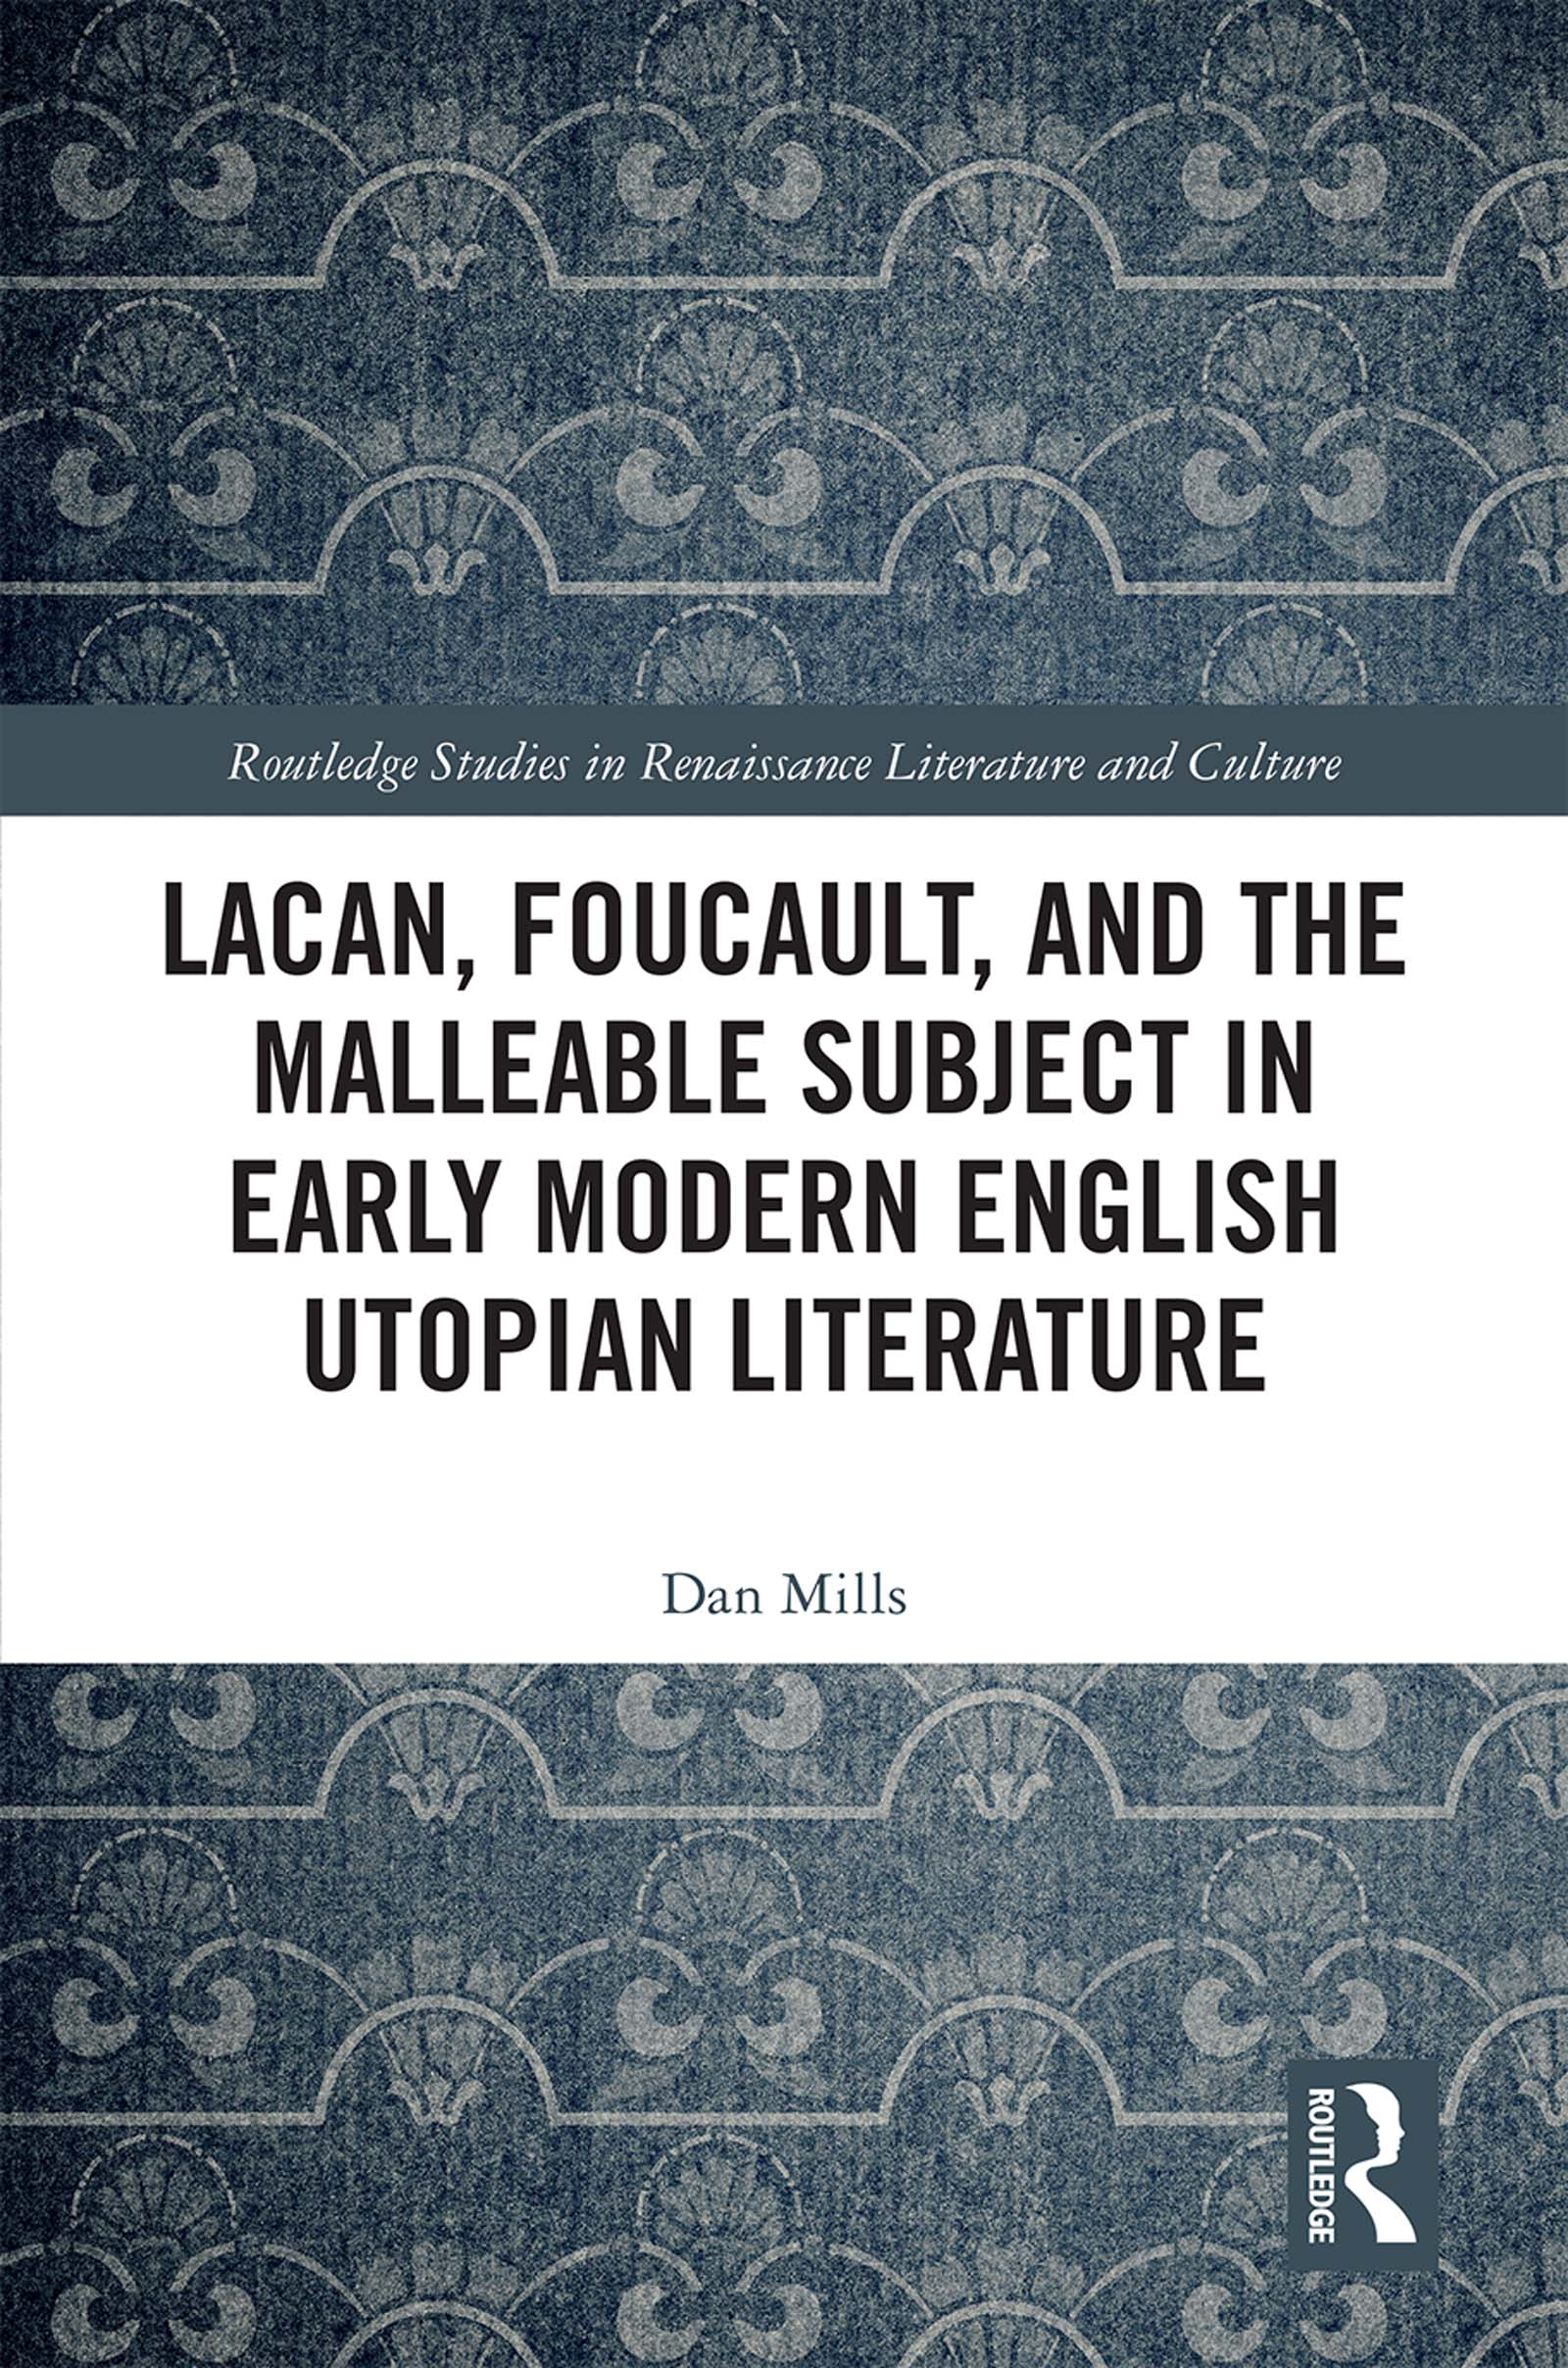 Lacan, Foucault, and the Malleable Subject in Early Modern English Utopian Literature book cover